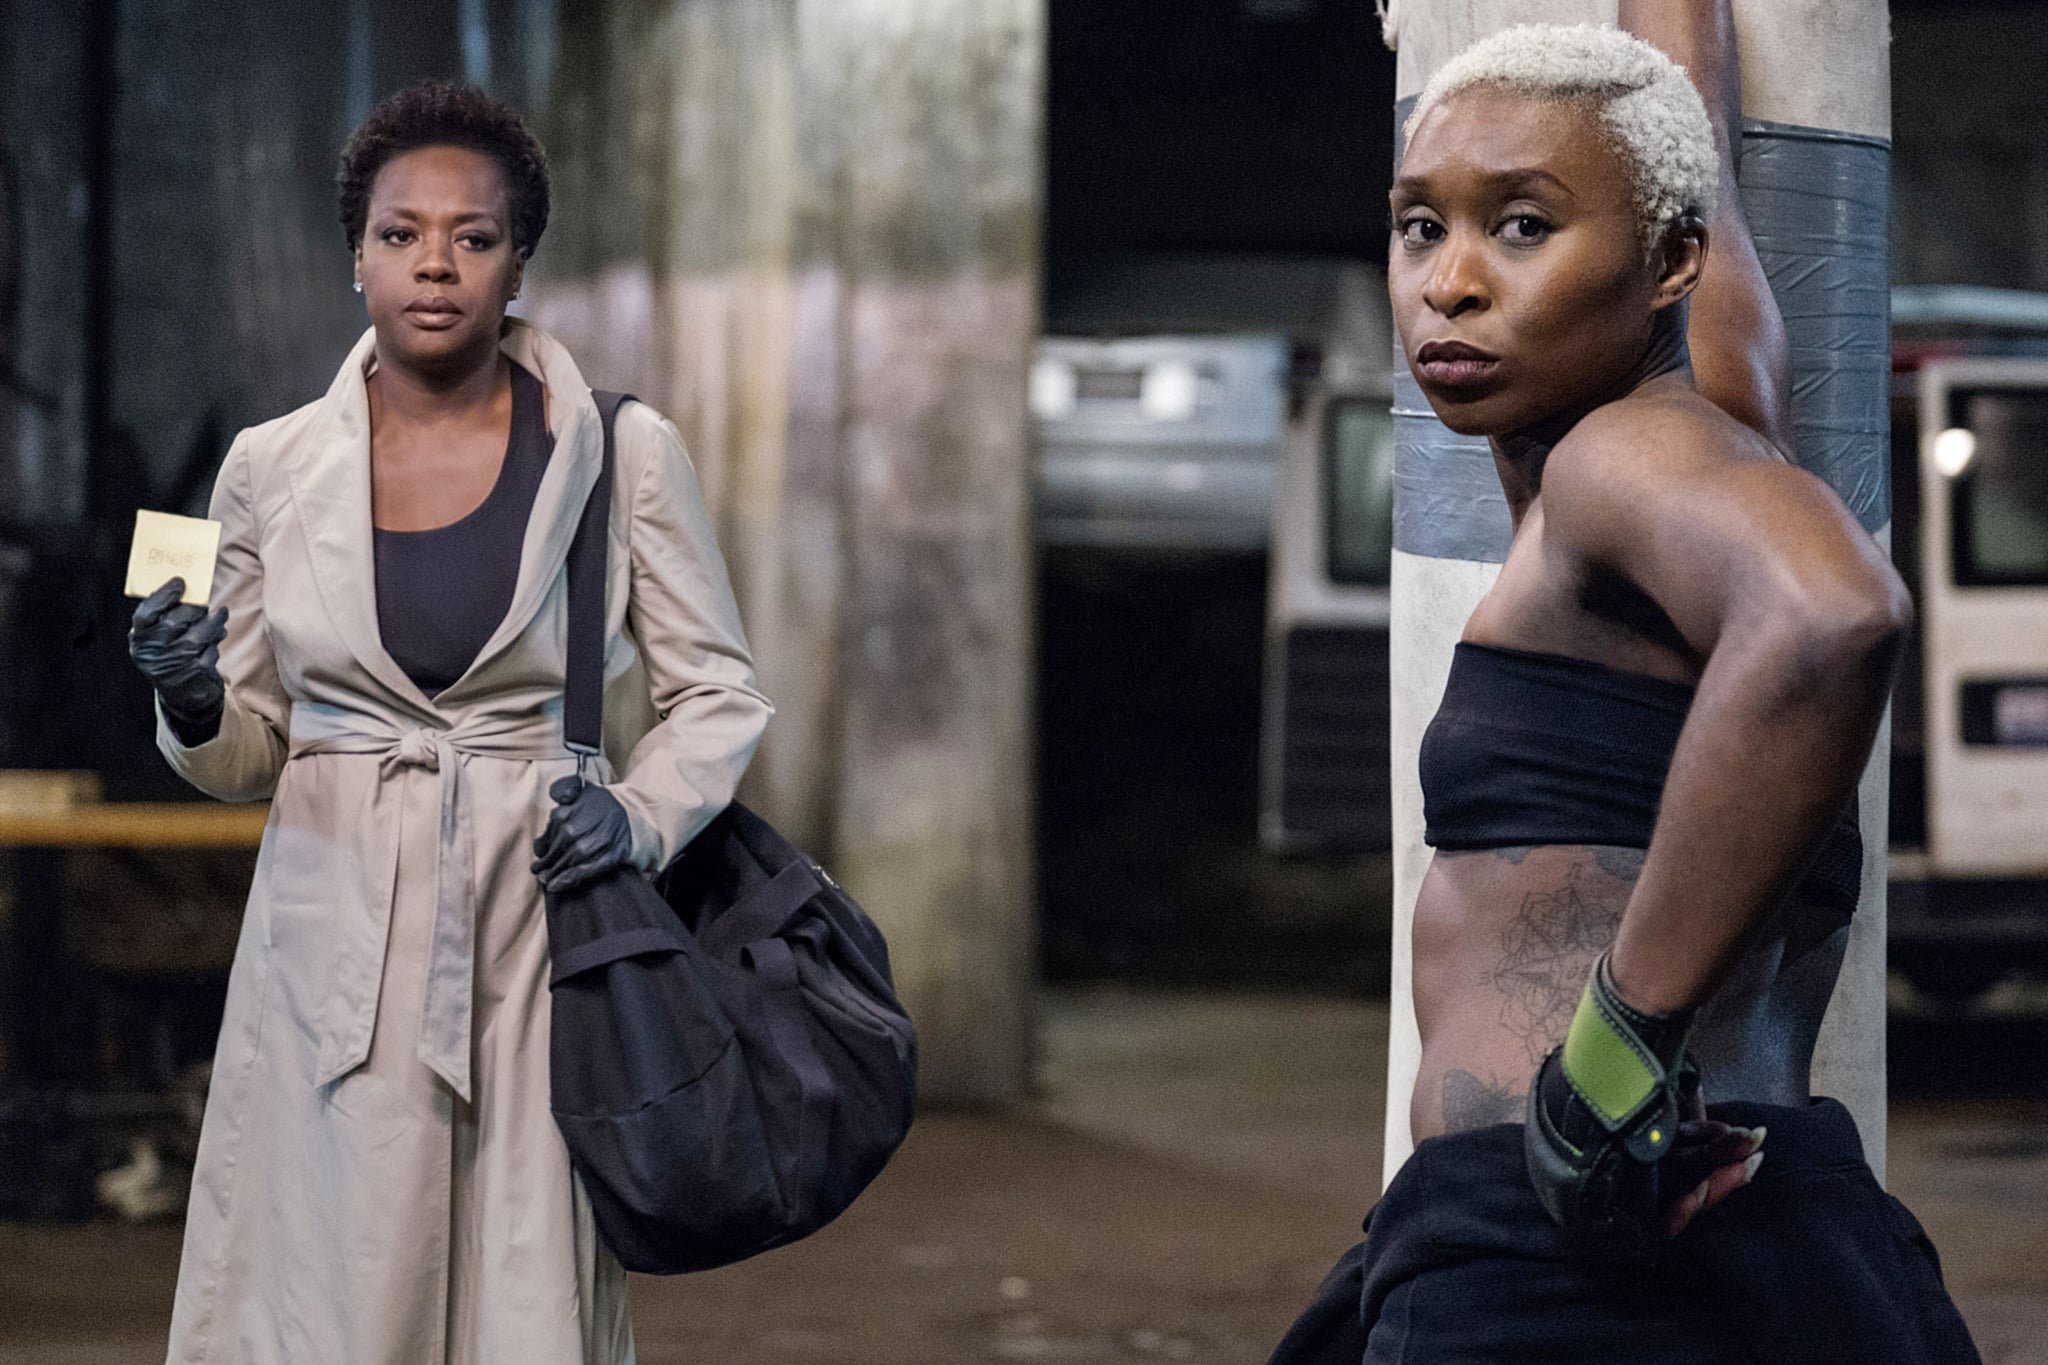 WIDOWS, from left: Viola Davis, Cynthia Erivo, 2018. ph: Merrick Morton /TM & copyright  Twentieth Century Fox Film Corp. All rights reserved. /Courtesy Everett Collection